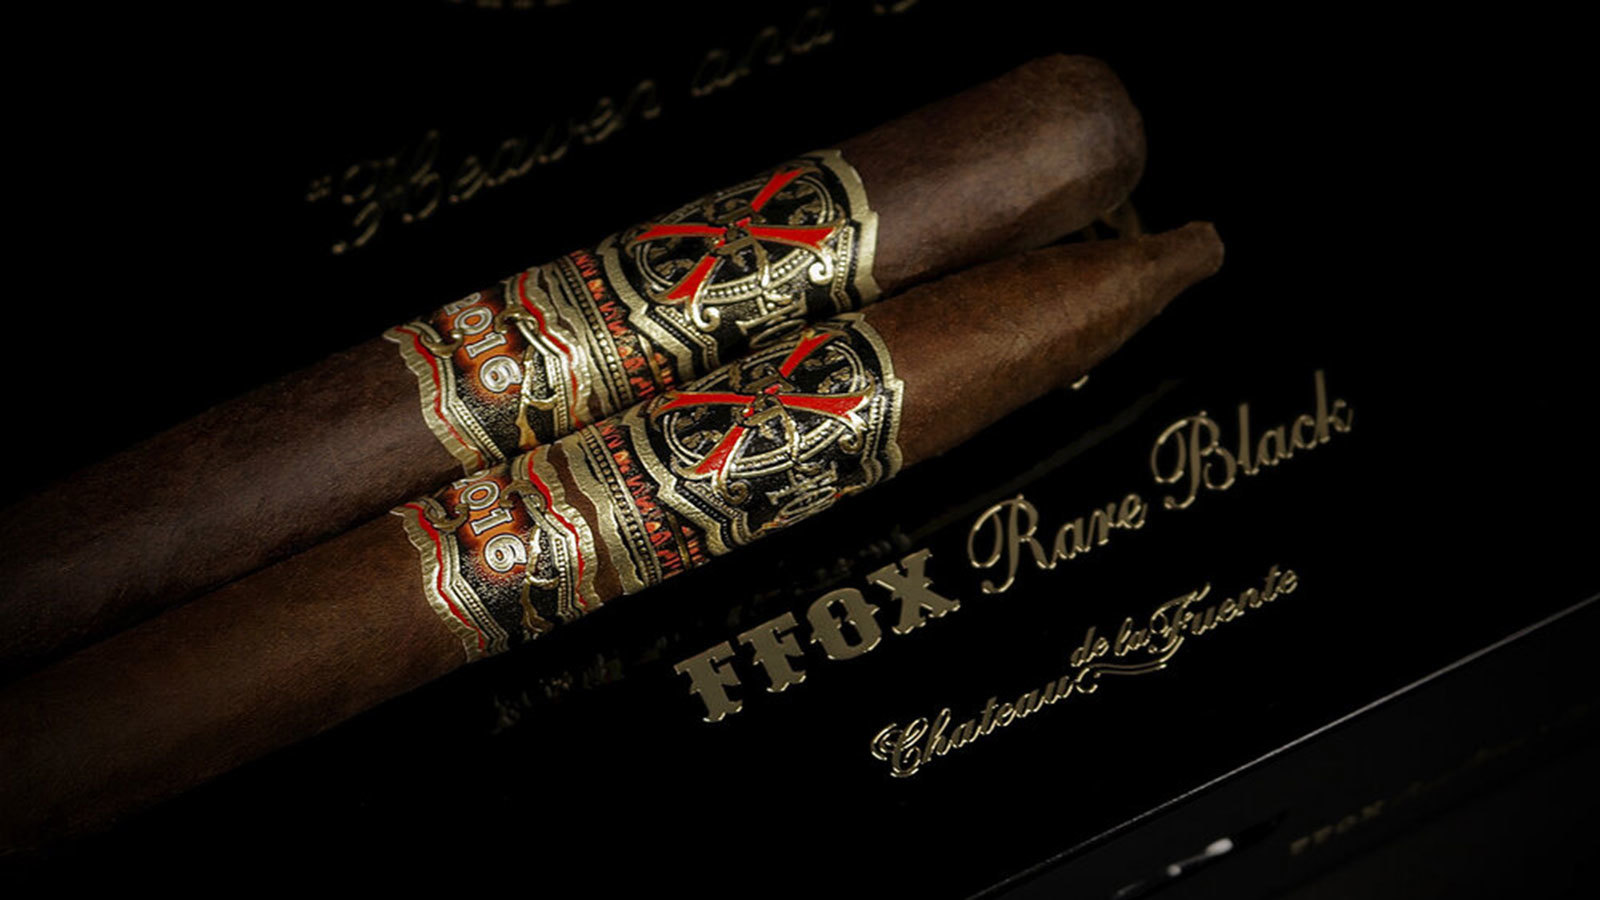 Fuente Fuente Opus X Aged Selection and other rare Feuntes